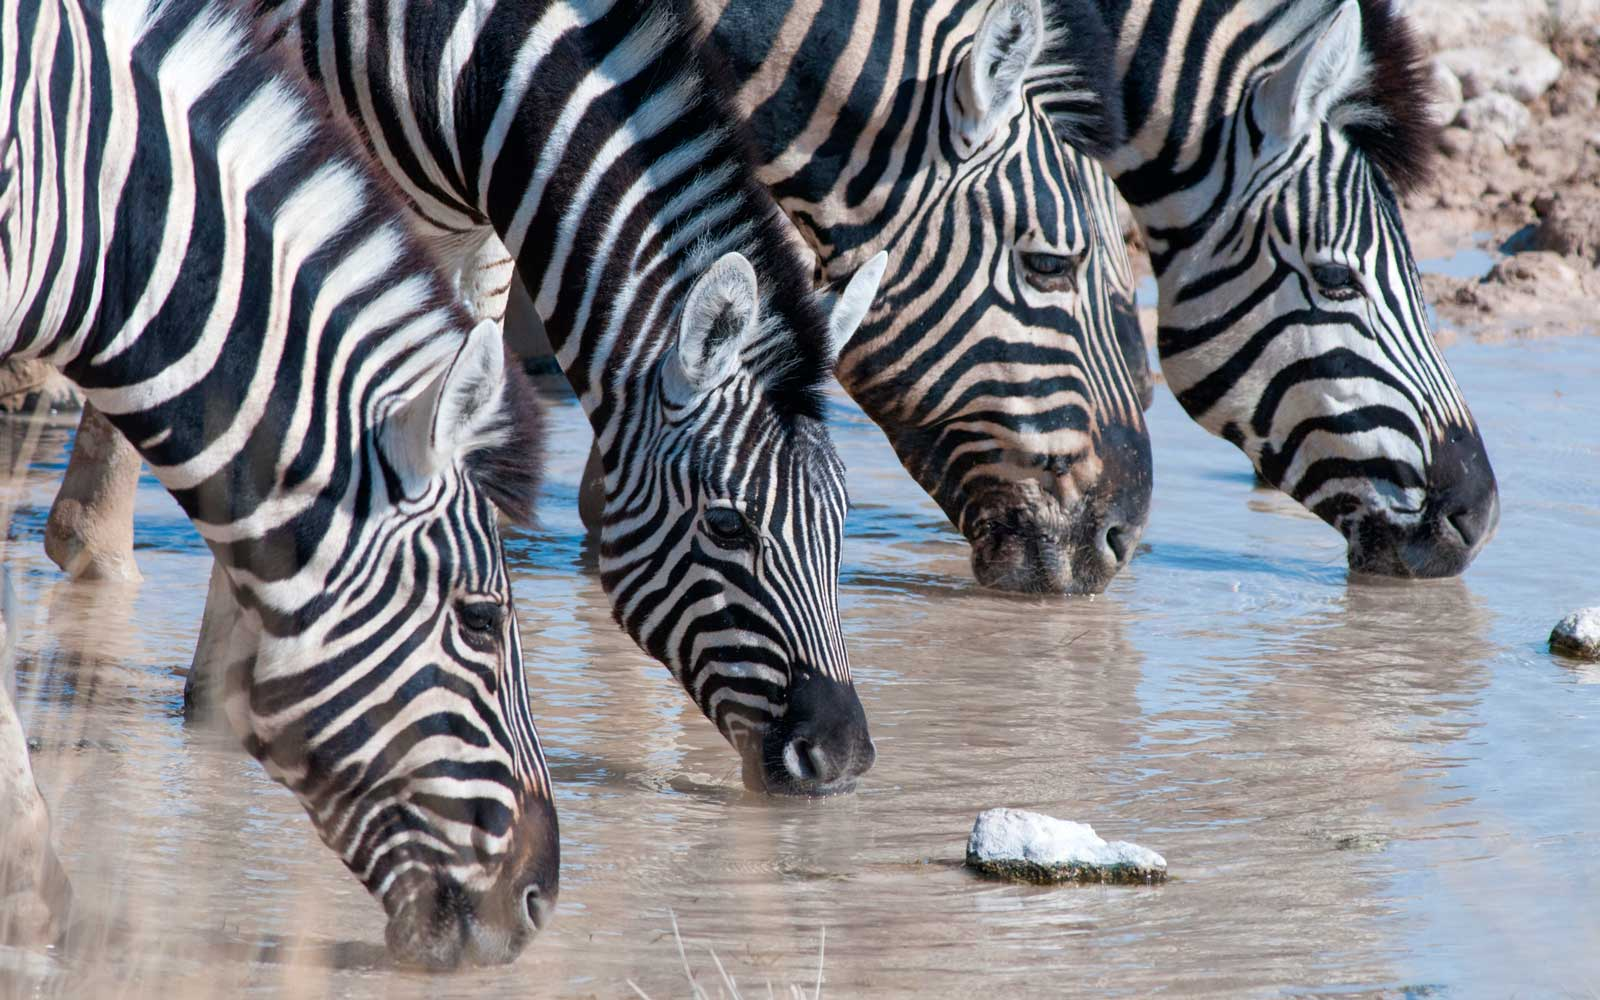 Tourist takes photo of zebra who can't seem to stop laughing